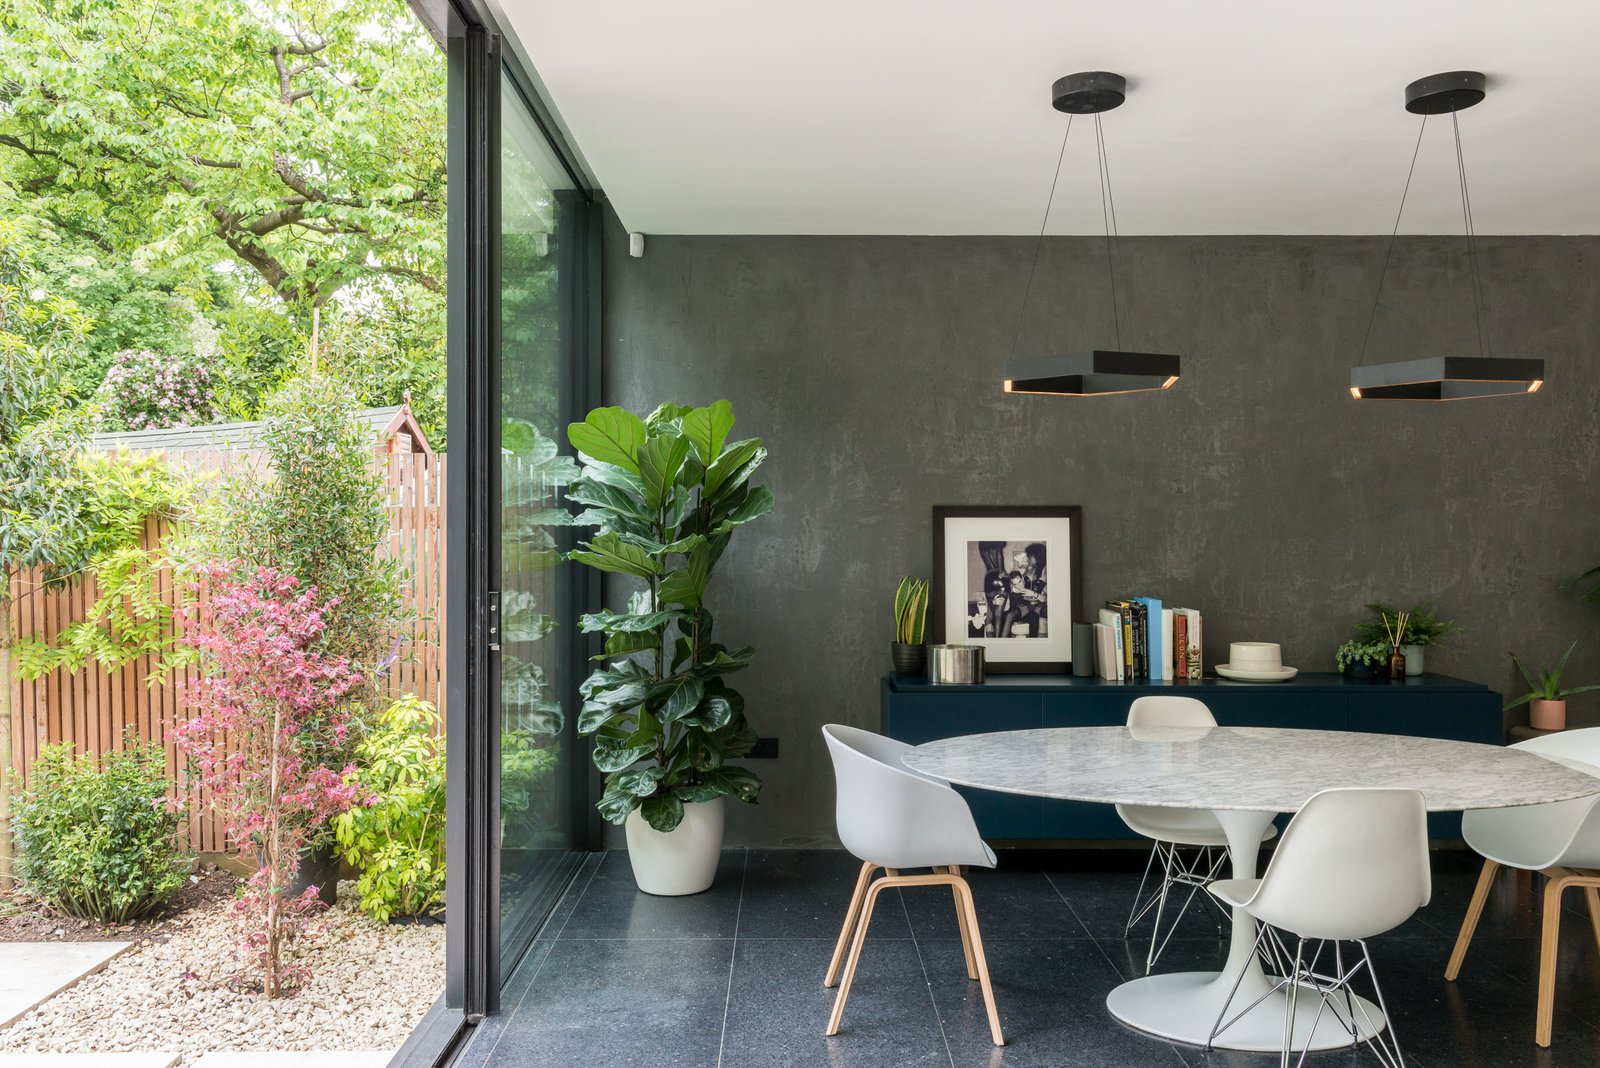 Dining Room, Terrazzo Floor, Table, Chair, and Pendant Lighting The mix of materials feels chic and polished, while also cultivating a natural, earthy vibe.     Photo 9 of 11 in A Swoon-Worthy London Apartment Is Listed For £1.8M